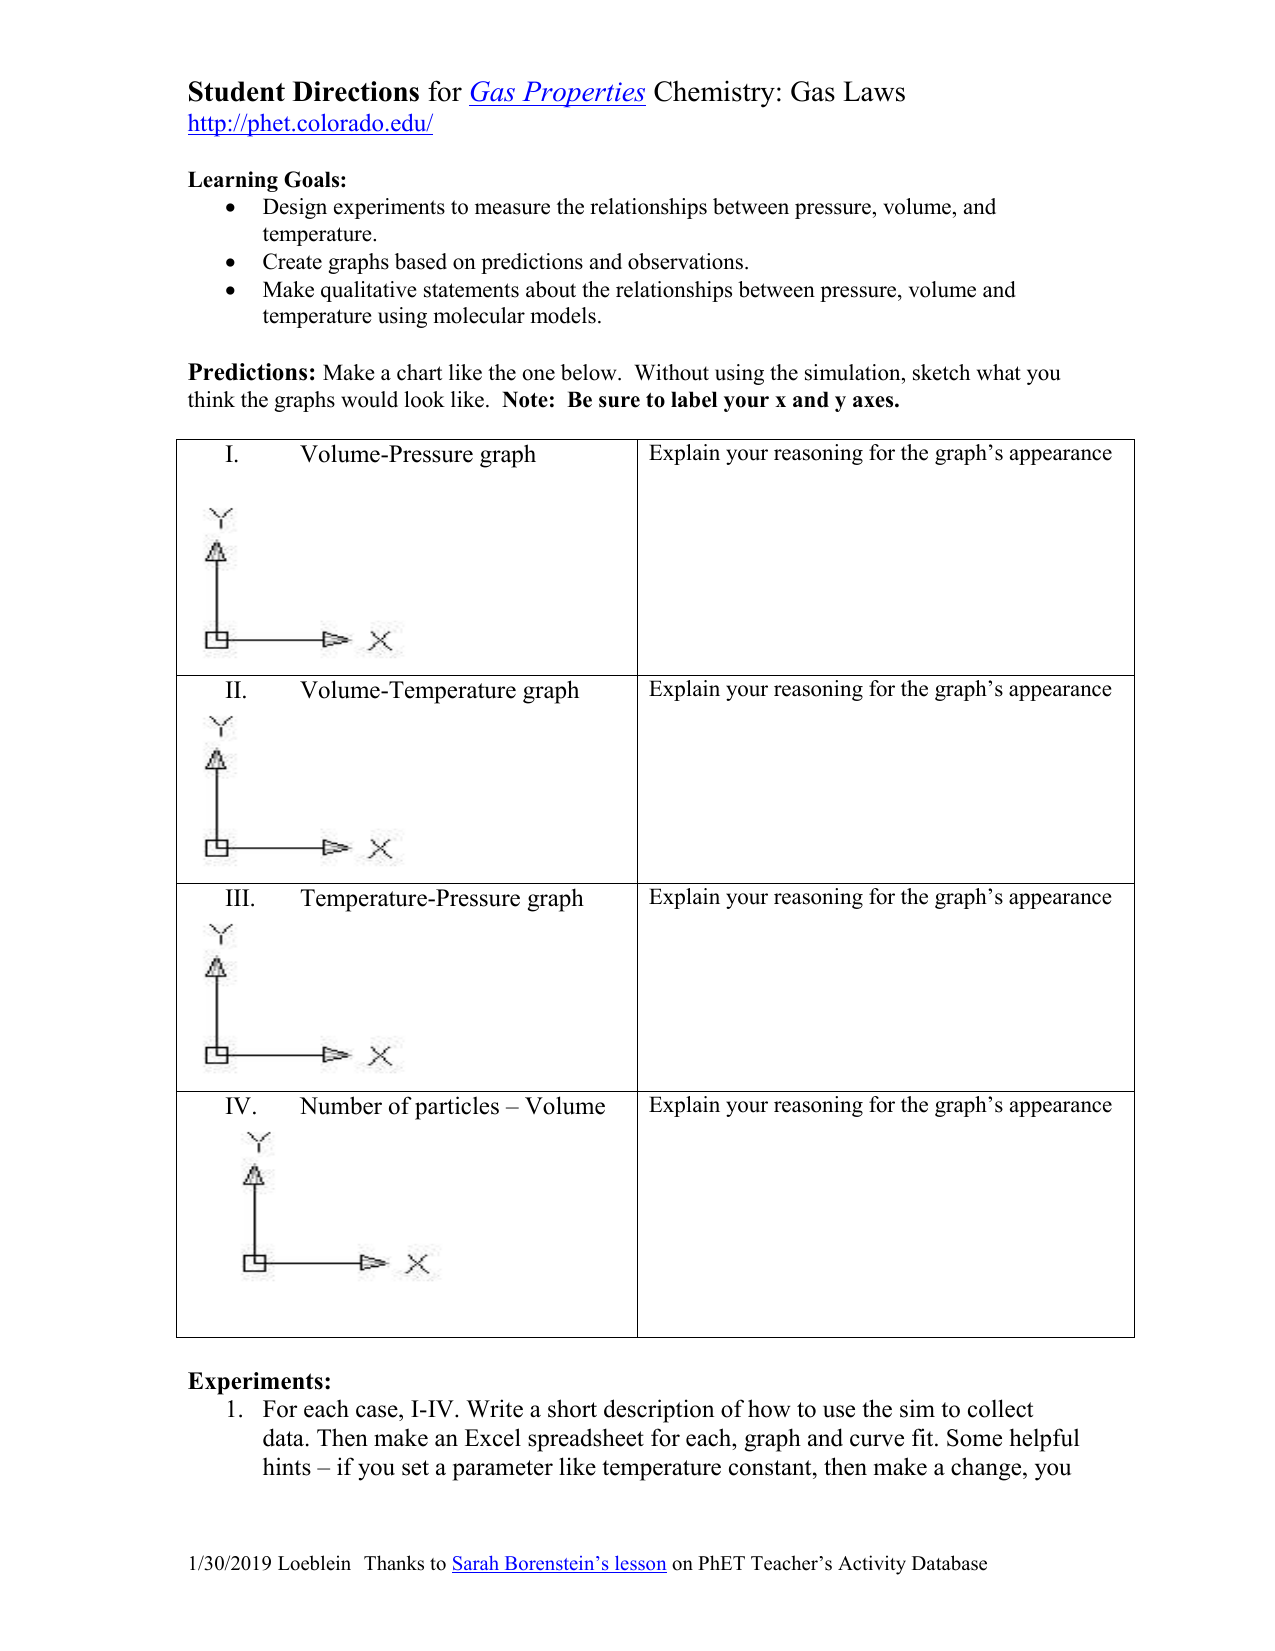 Gas Properties Laws Student Directions